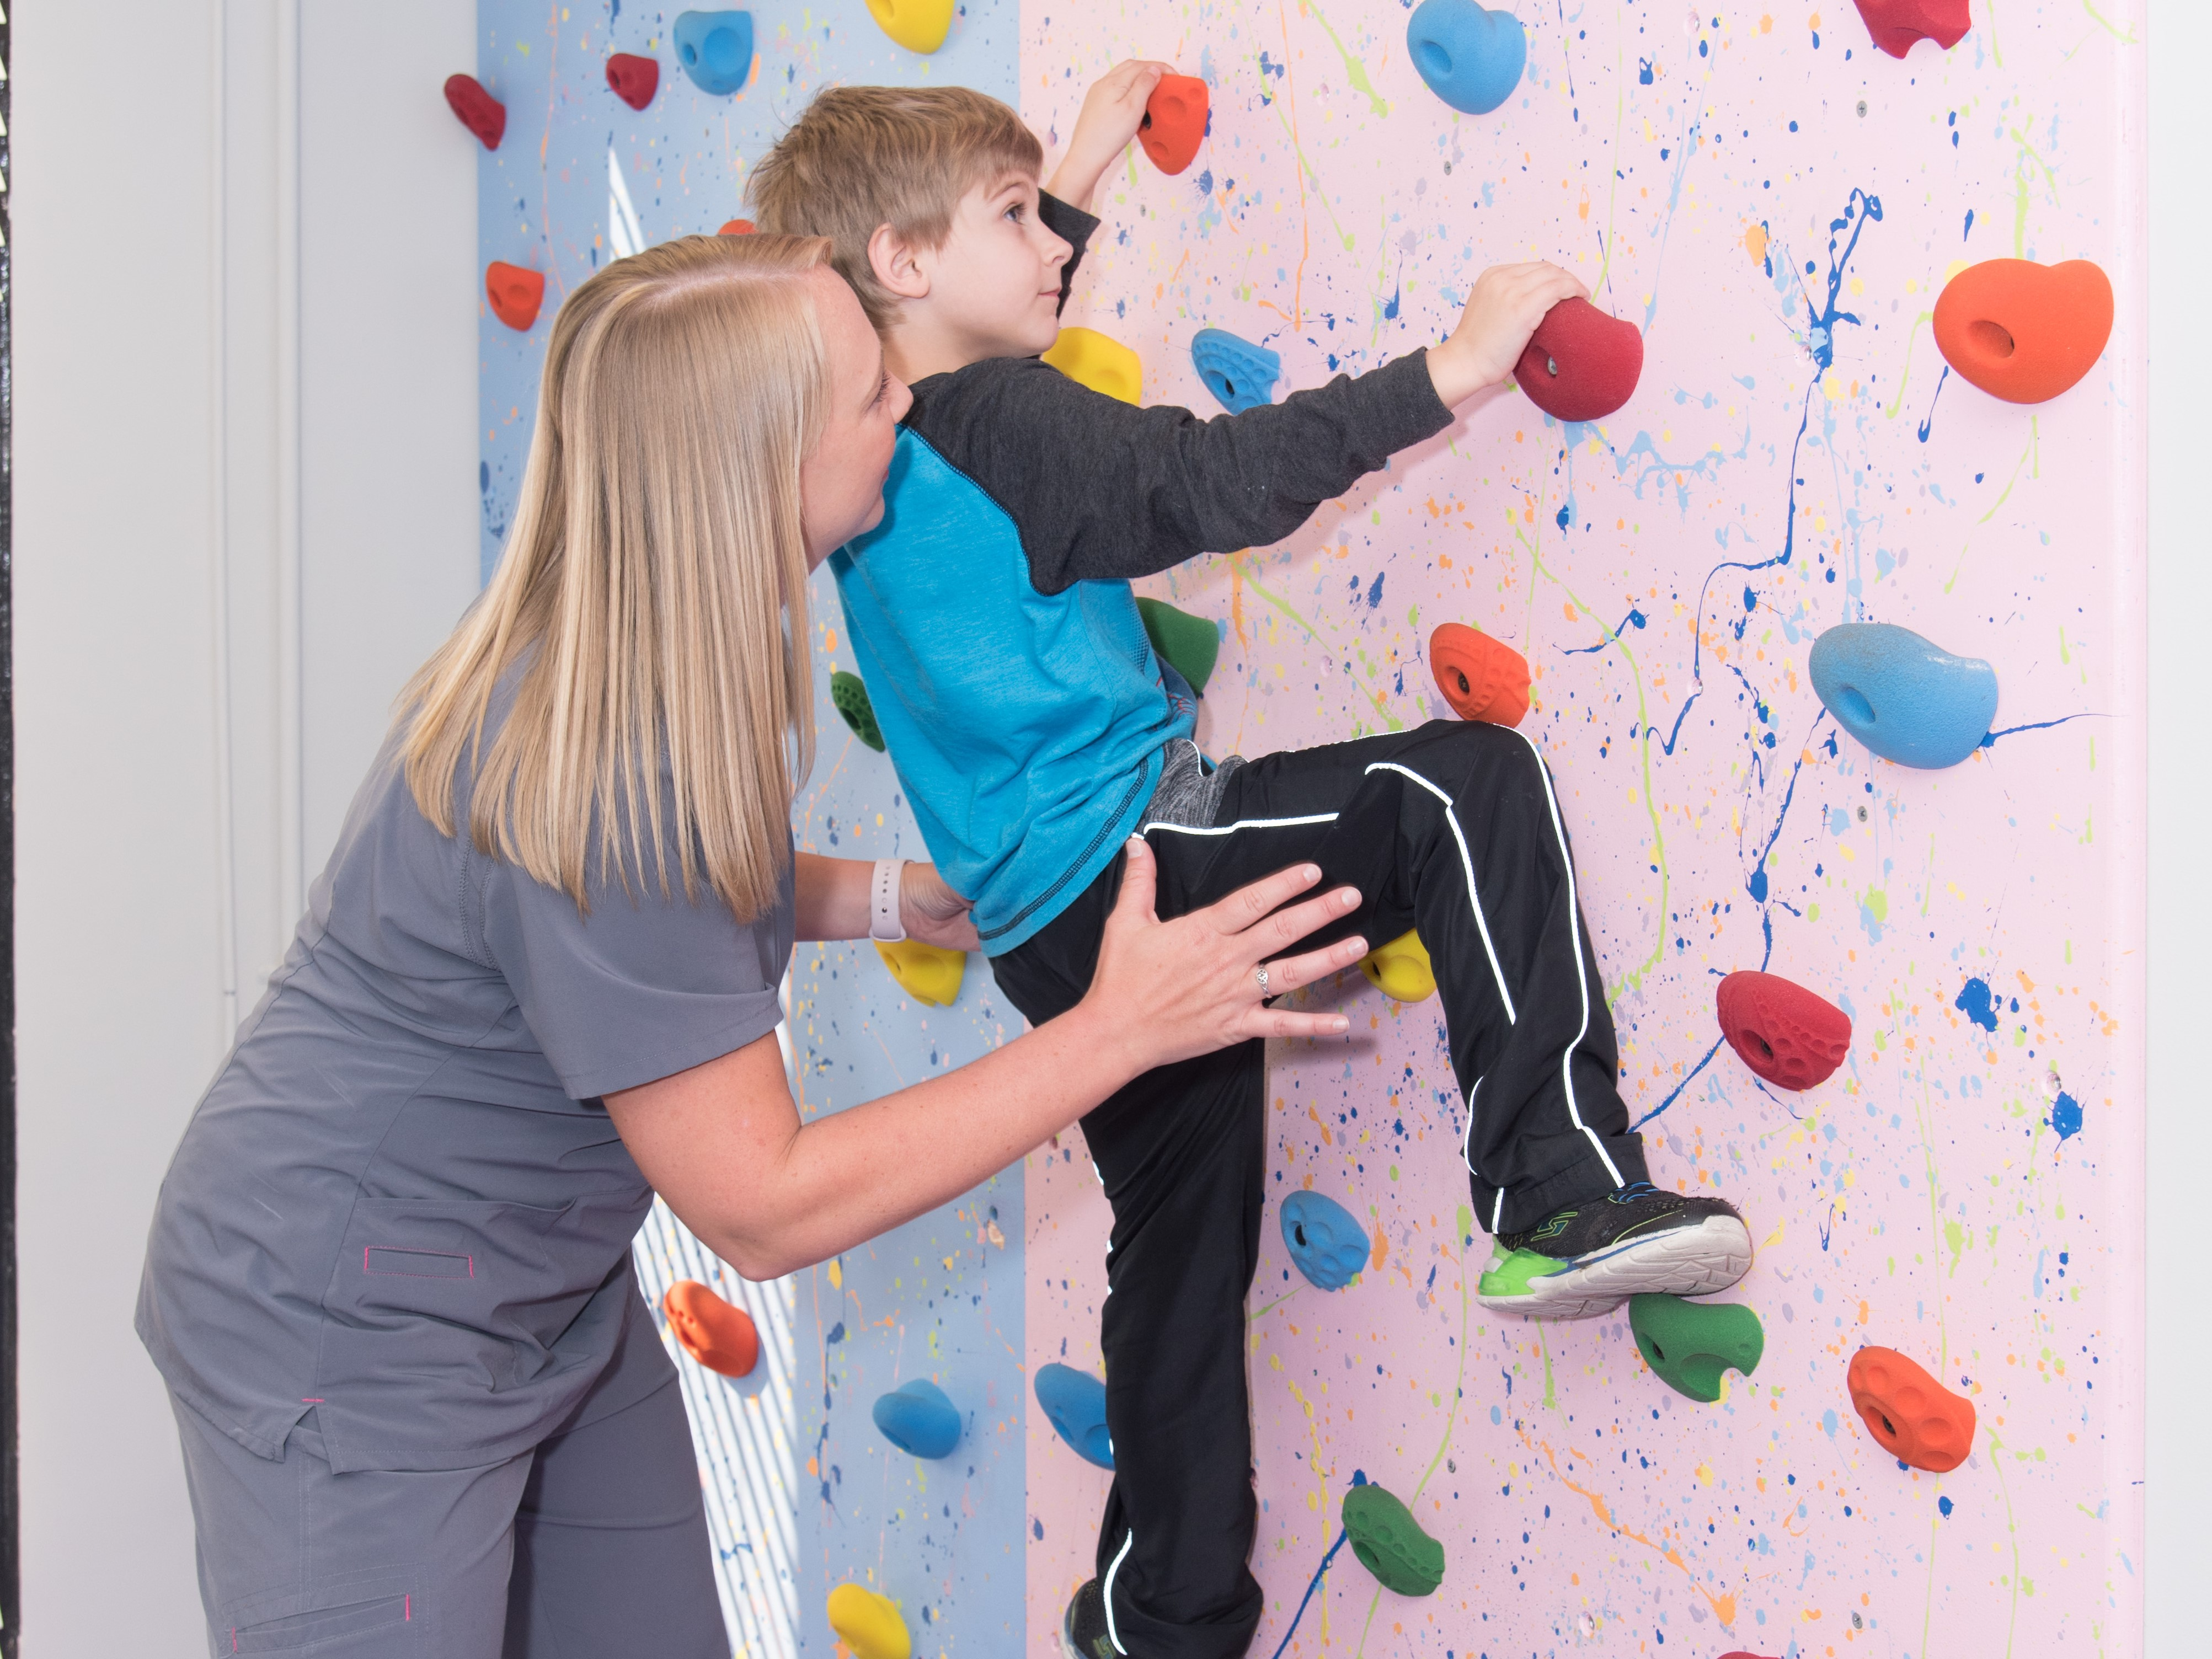 Tri-County Therapy Physical Therapy and Rock Wall Charleston, SC